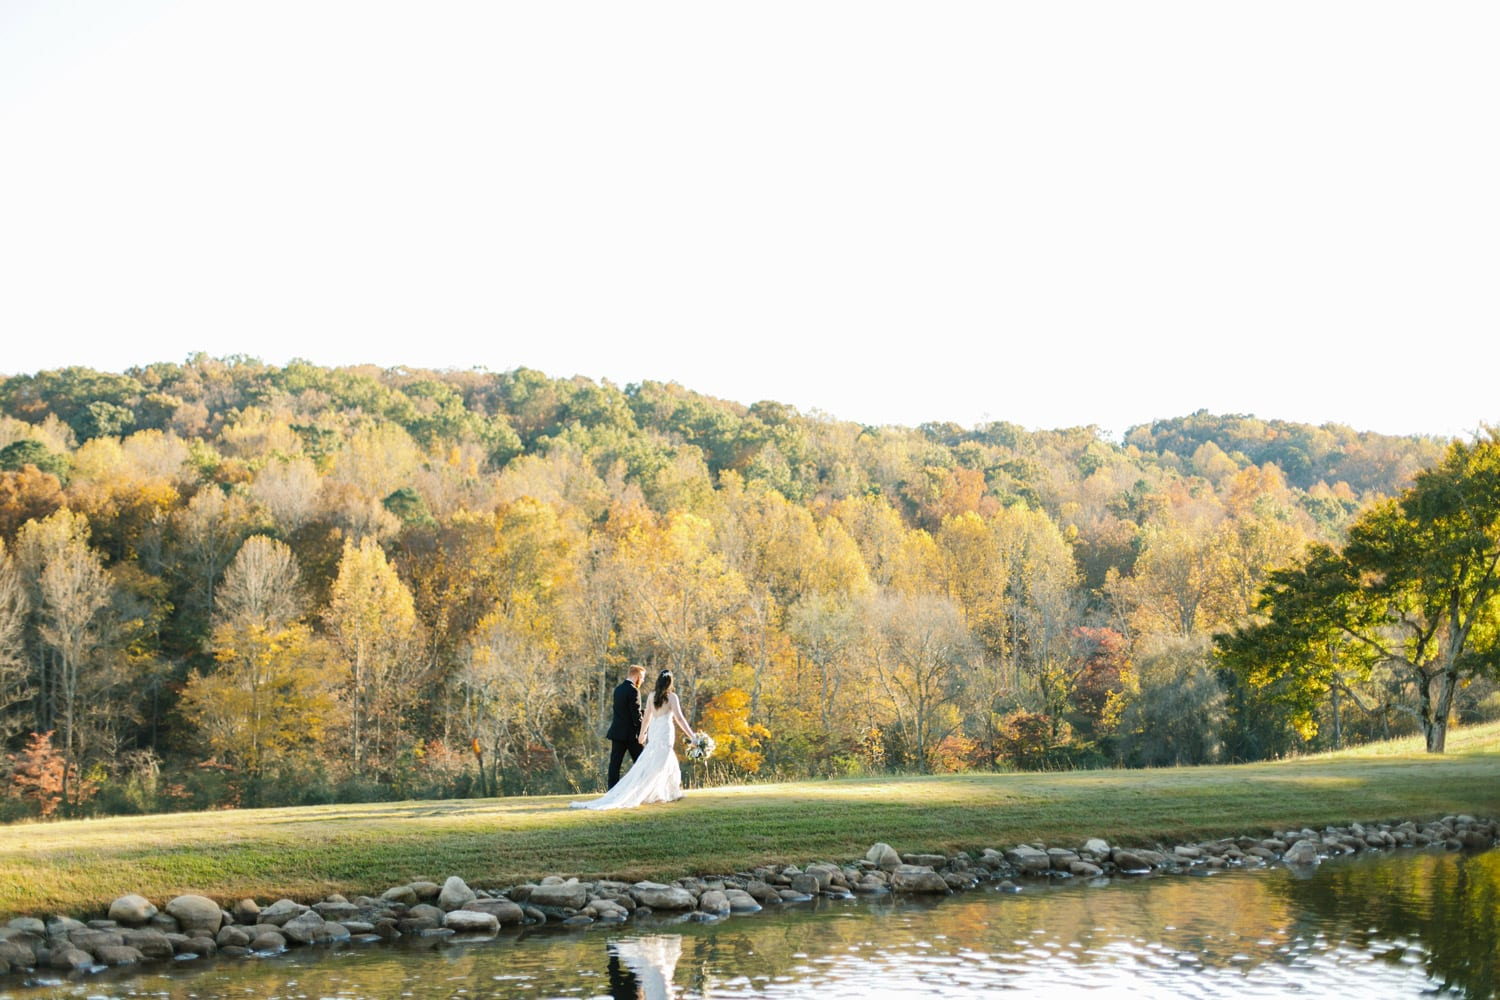 Bride and groom walk along the water while holding hands